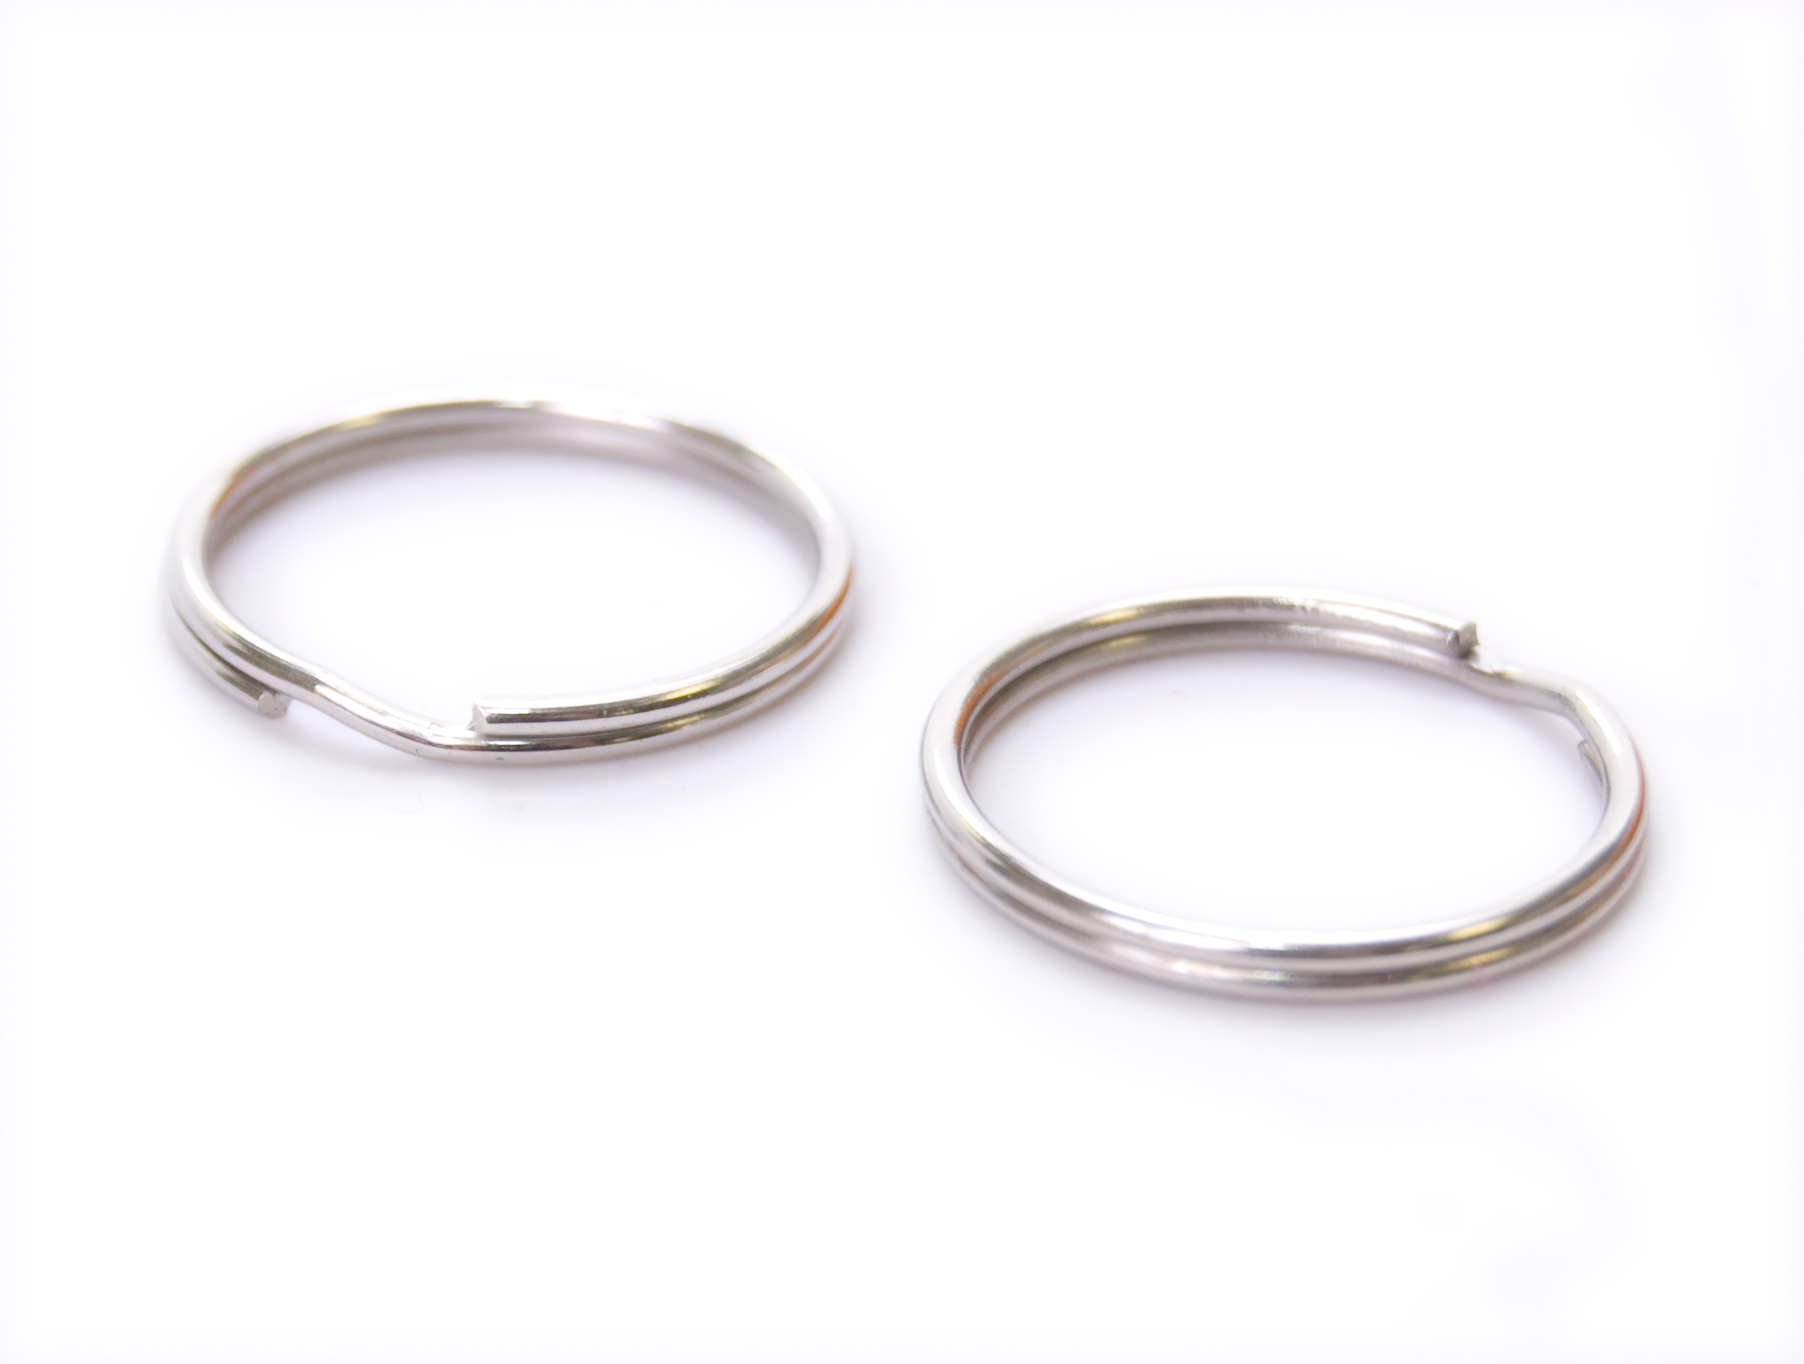 buy cheap keychain ring at wholesale price at krafezee